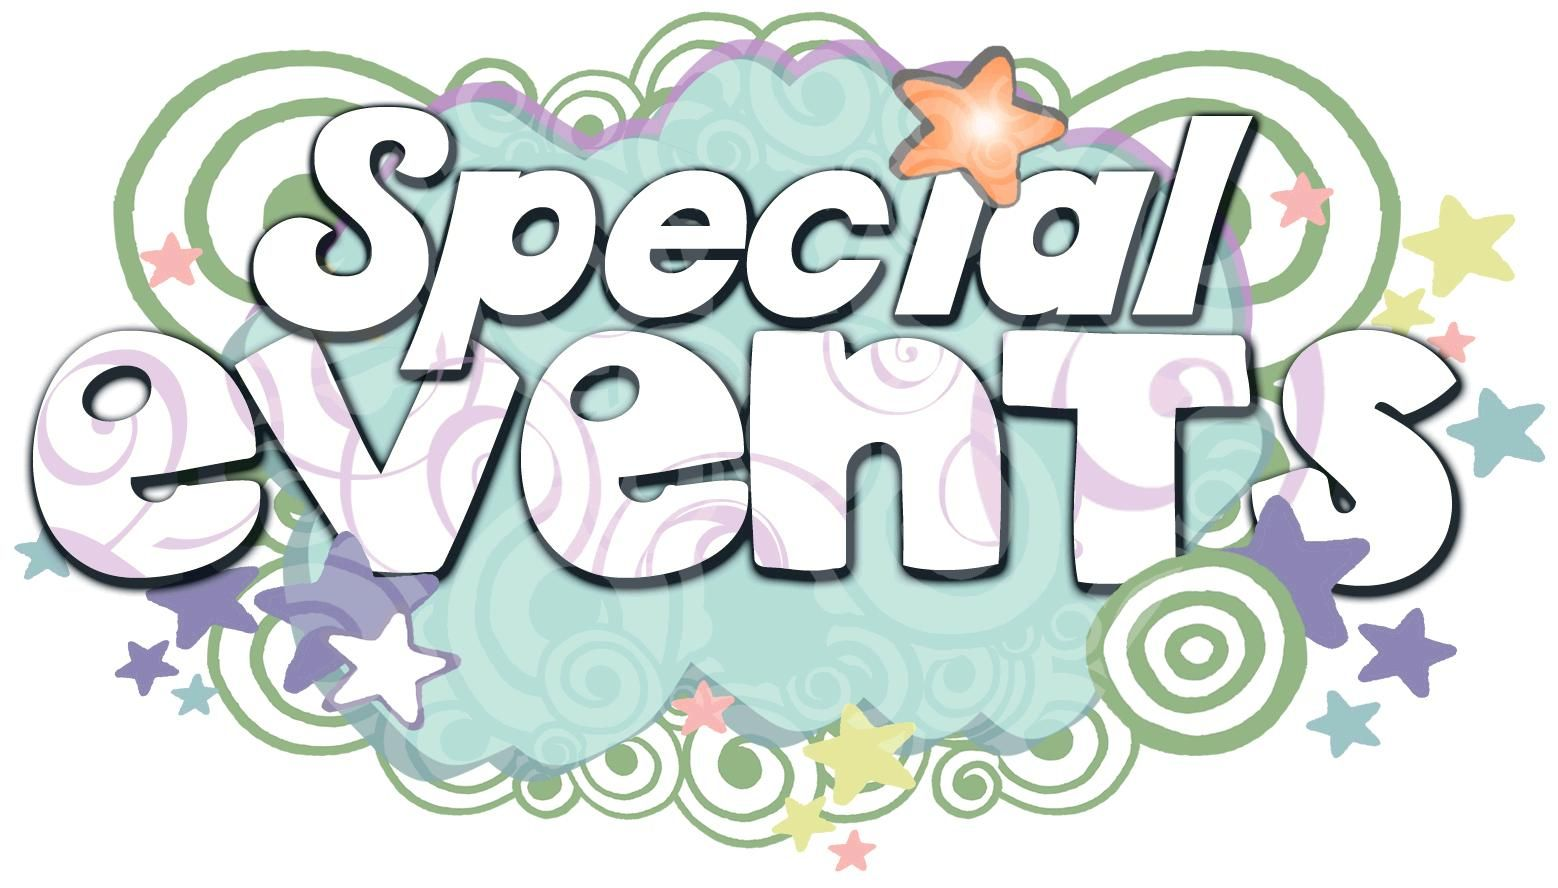 Pin on Special Events